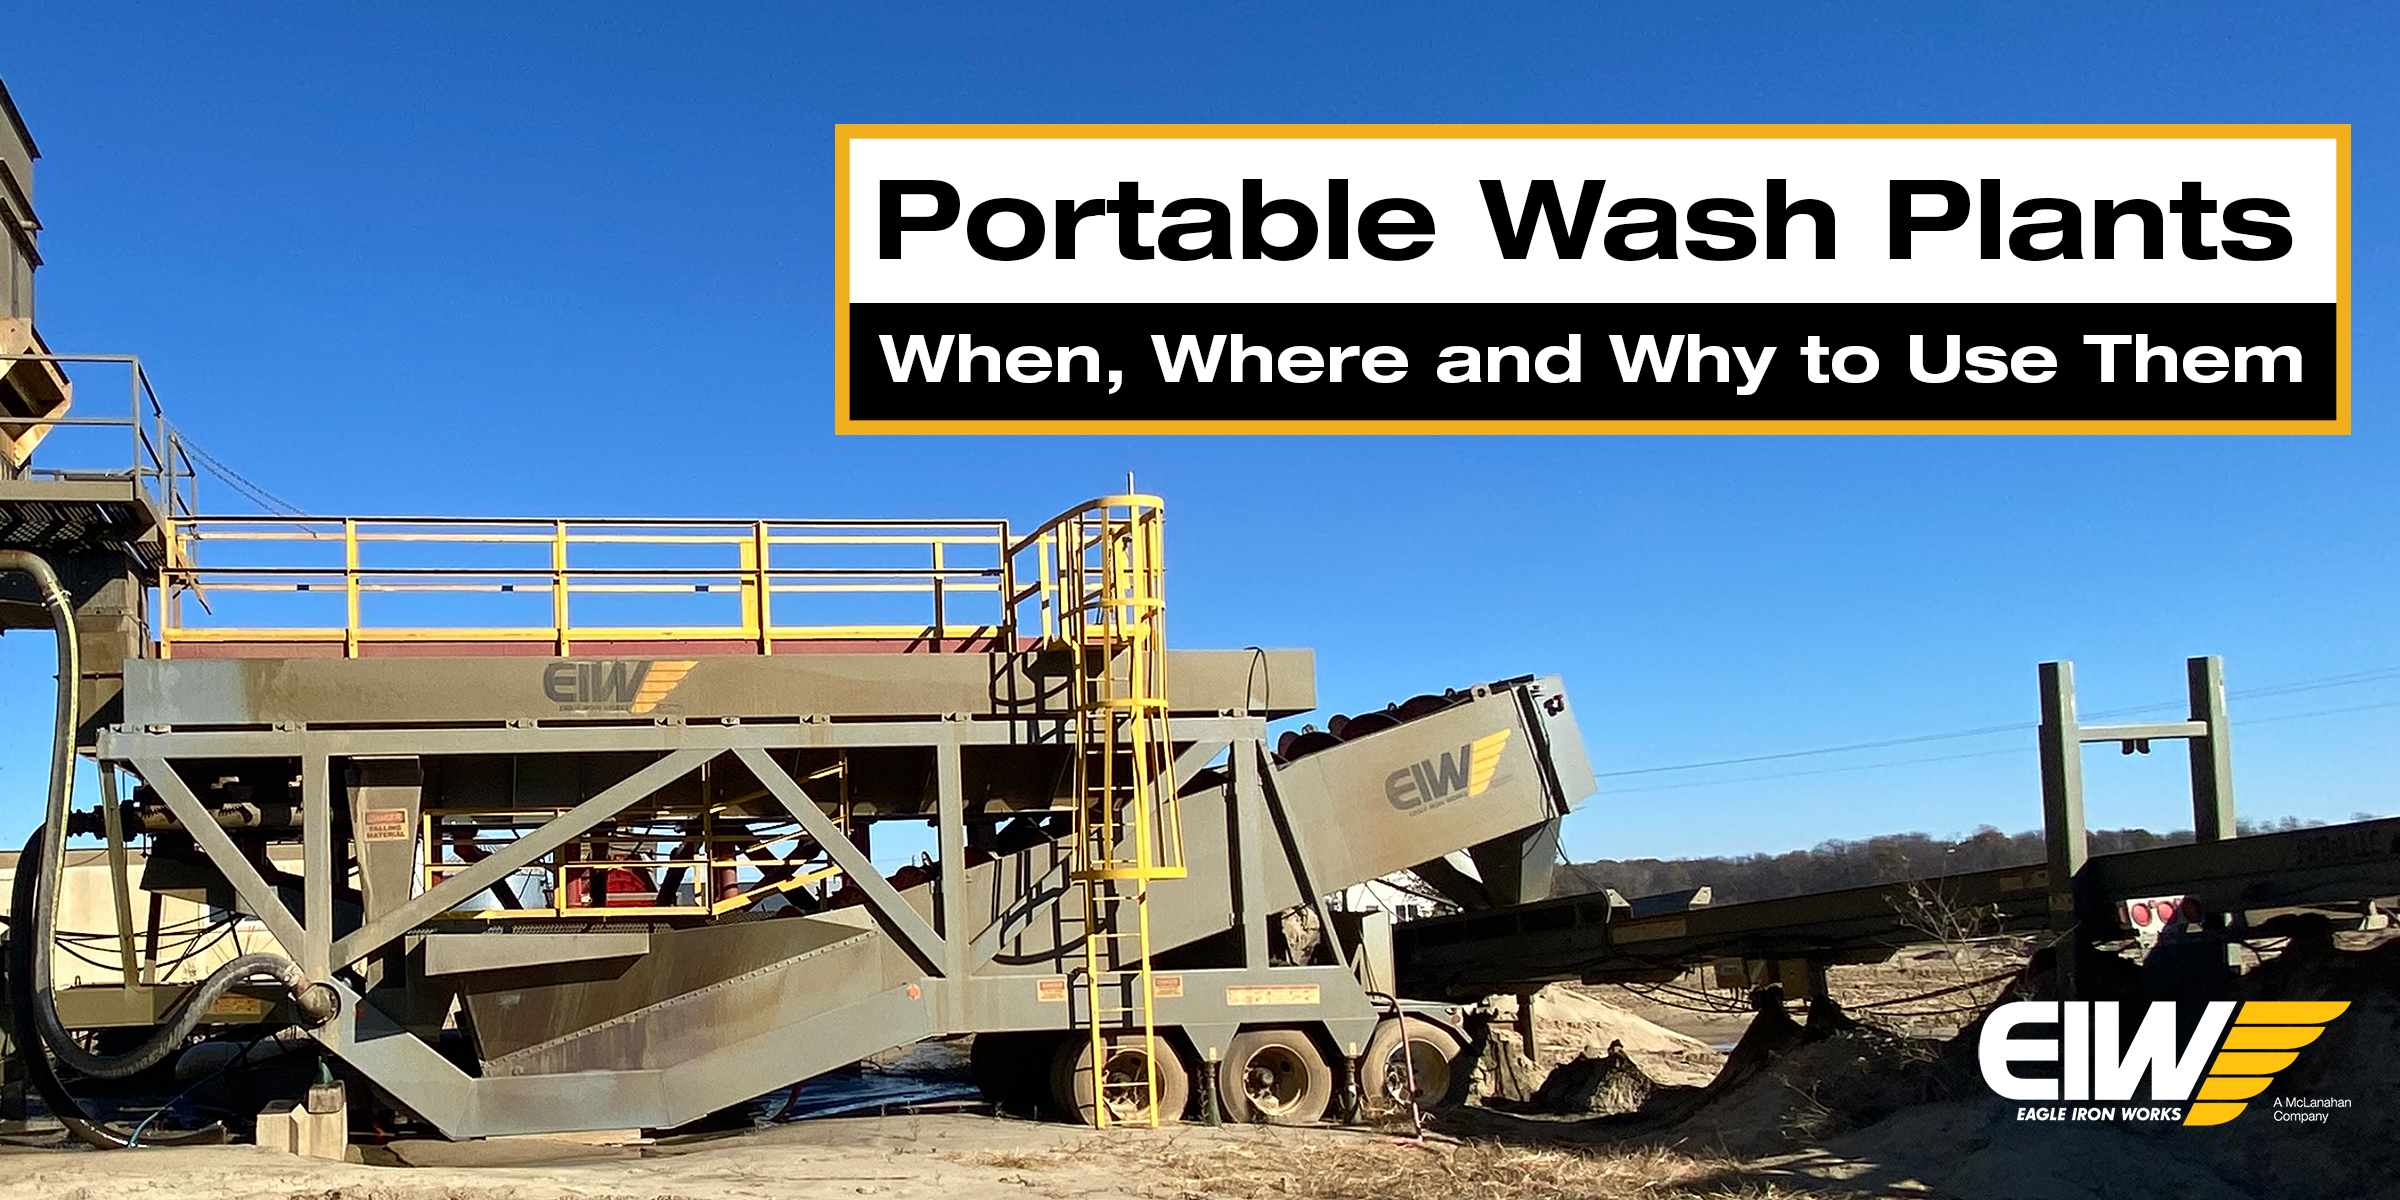 Portable Wash Plants: When, Where and Why to Use Them